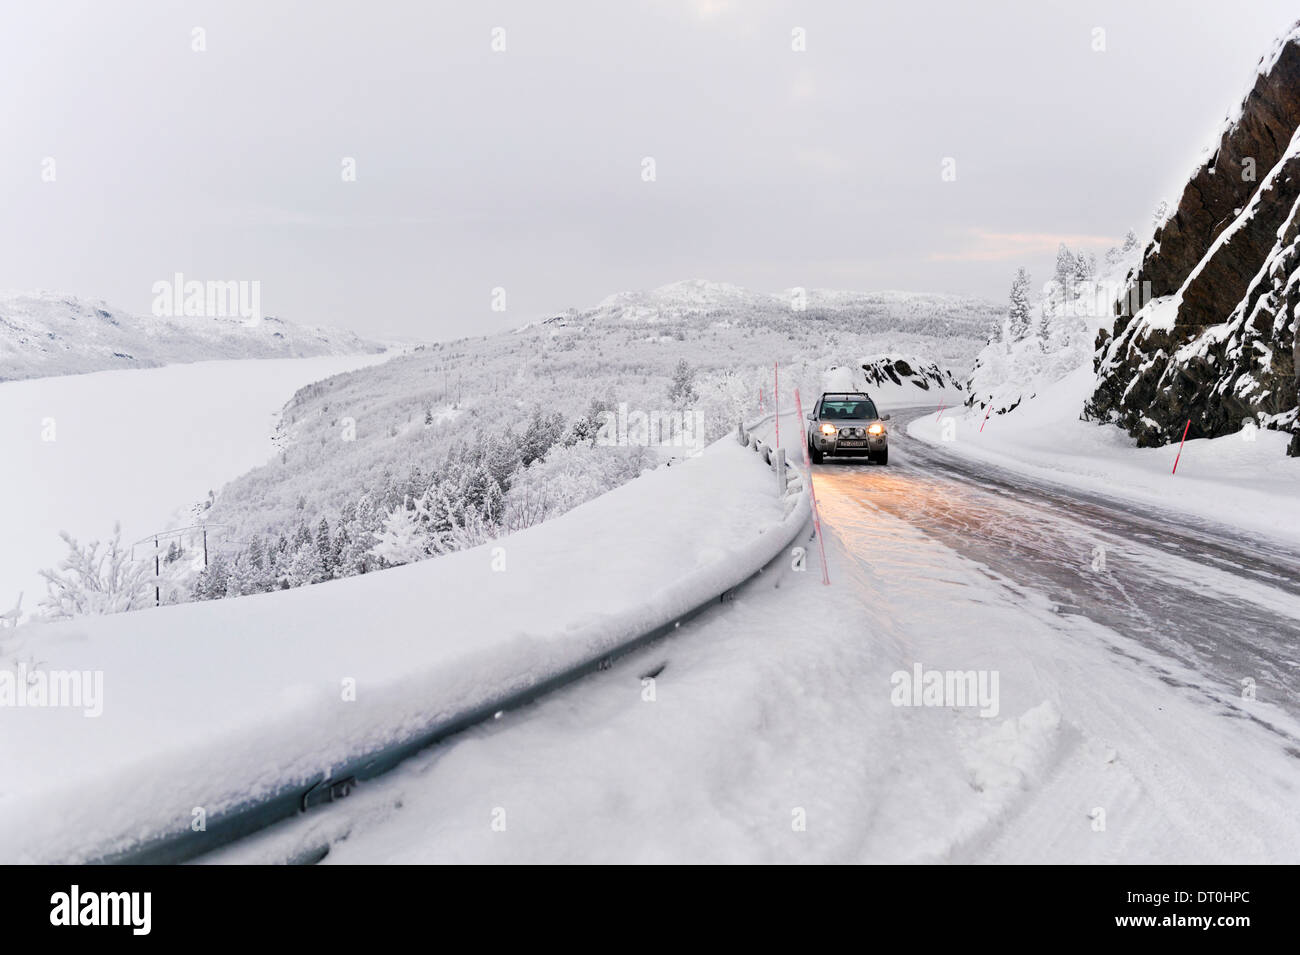 Snow covered Winter road and frozen fjord near Kirkenes, Finnmark, Norway - Stock Image